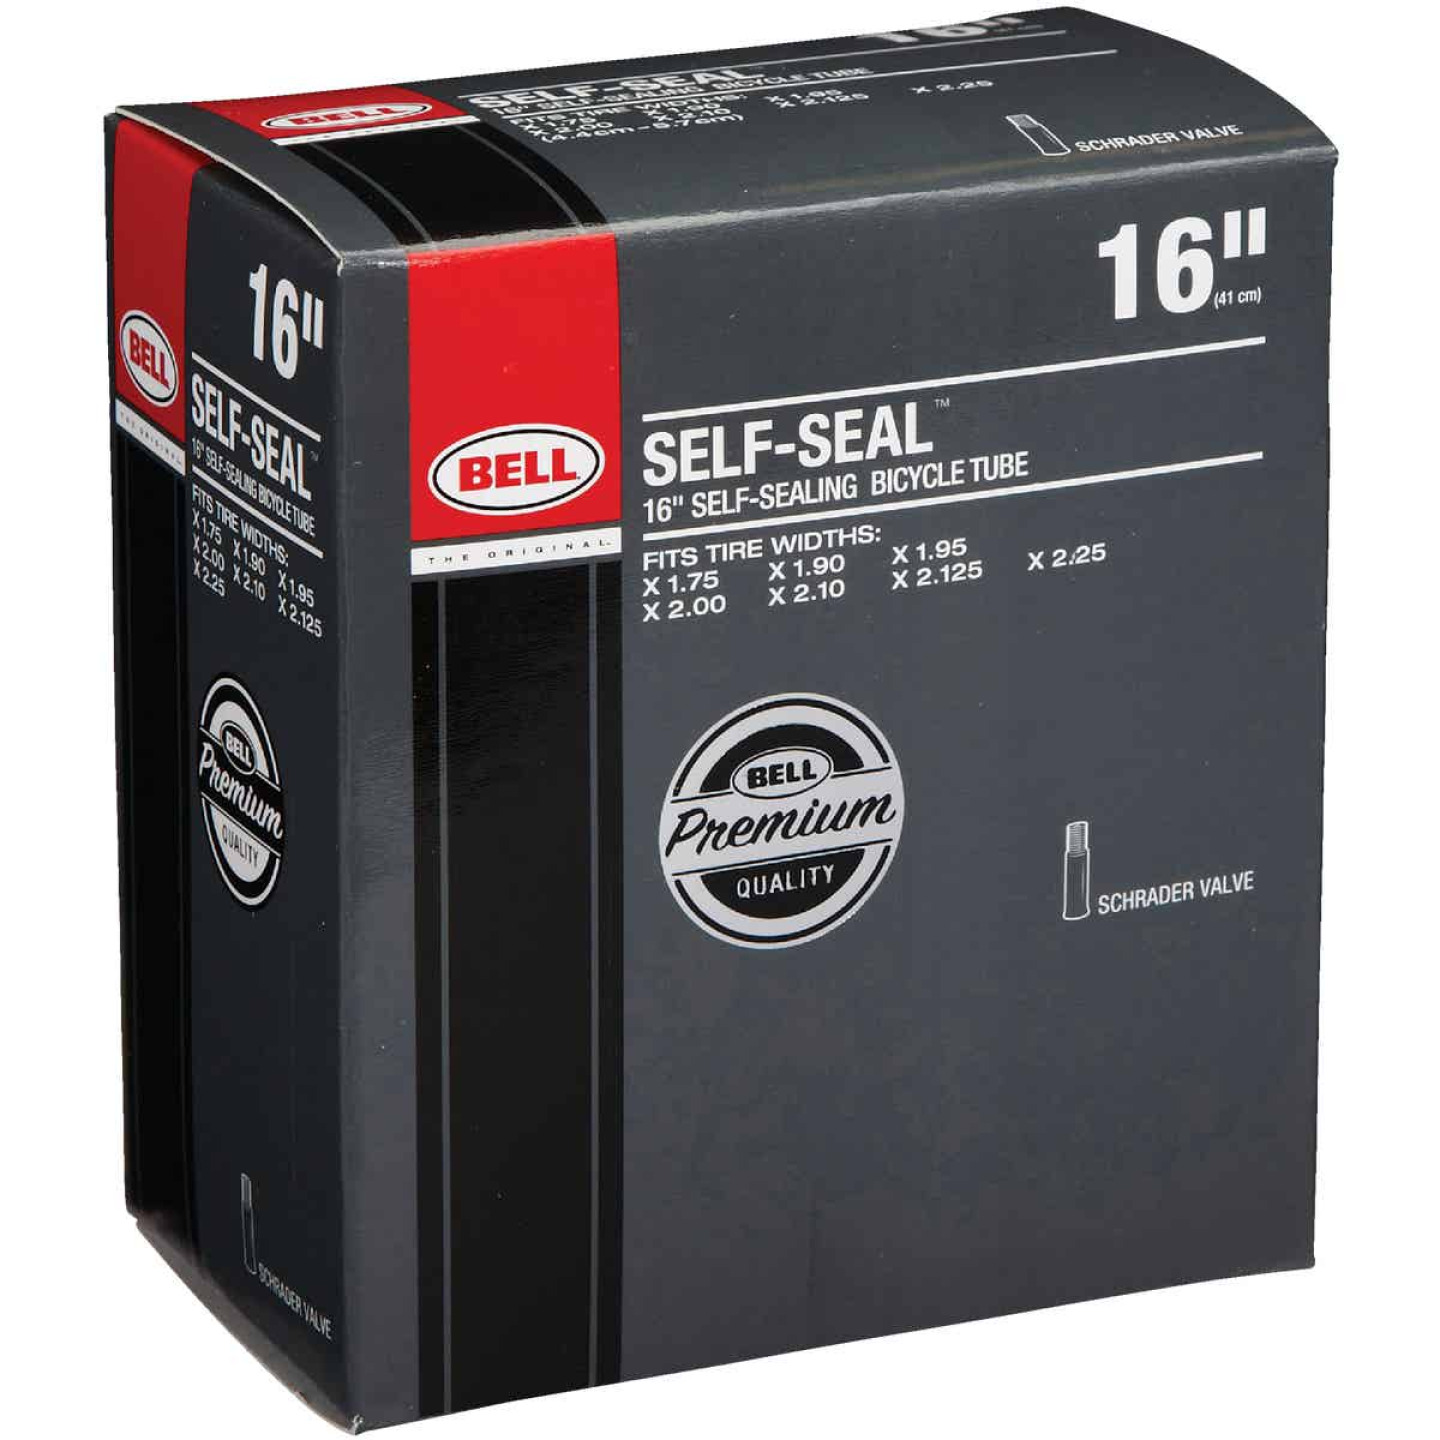 Bell Sports 16 In. Self-Sealing Bicycle Tube Image 1